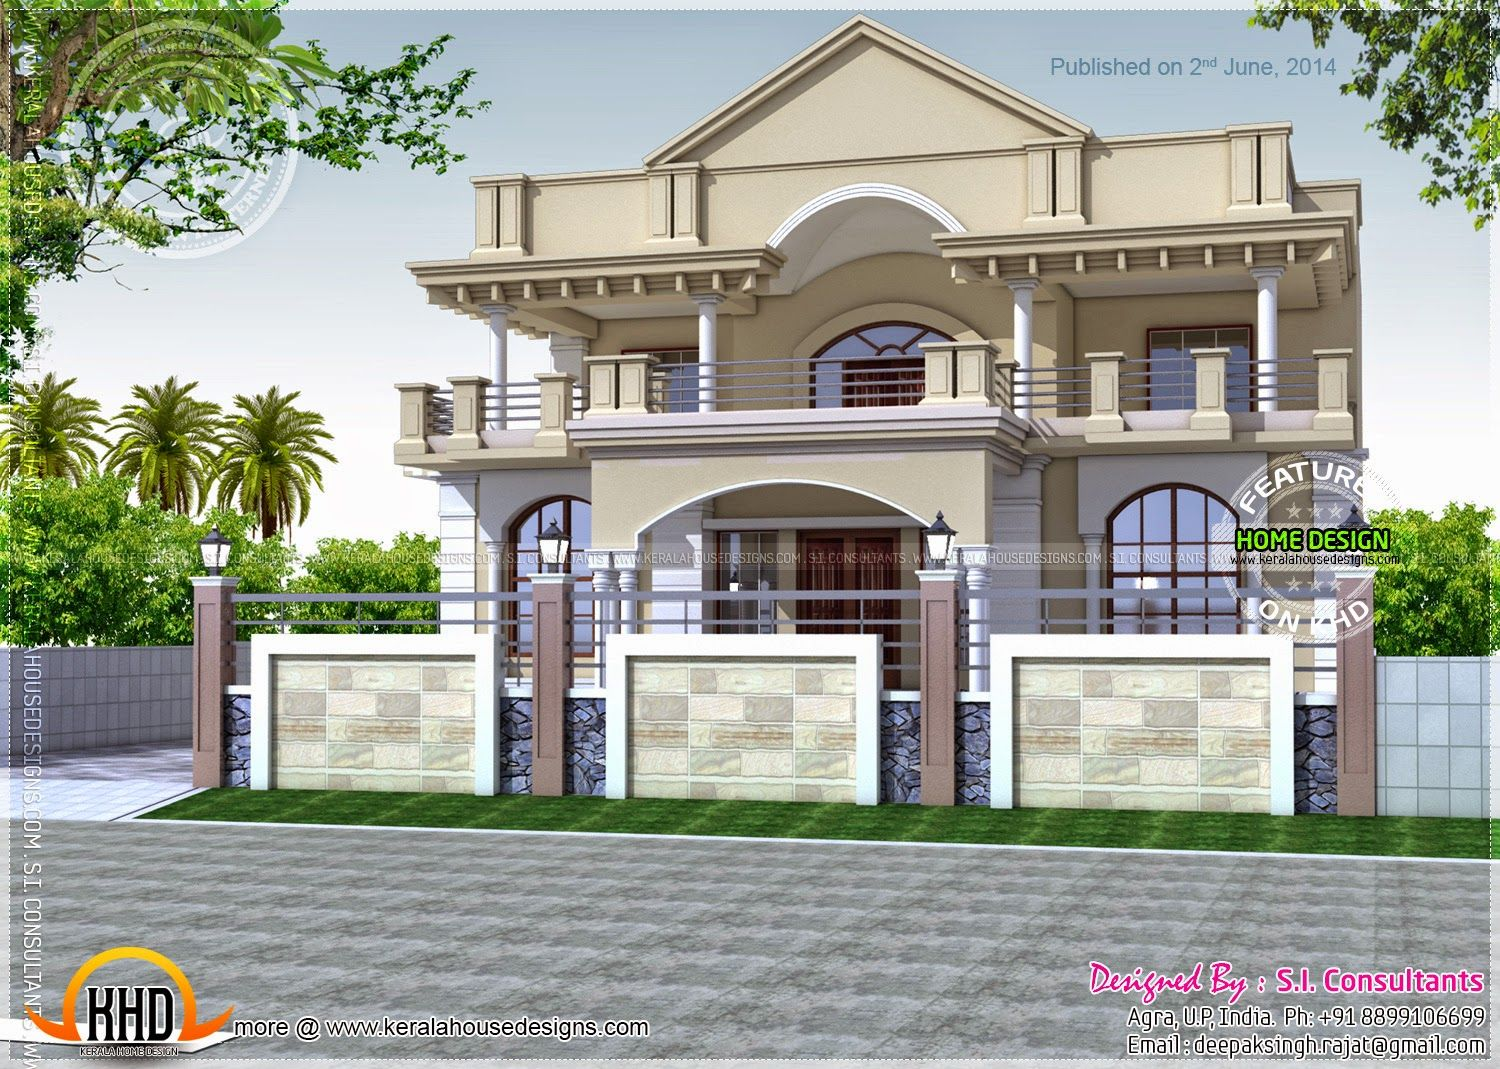 North indian exterior house indian house plans Indian home exterior design photos